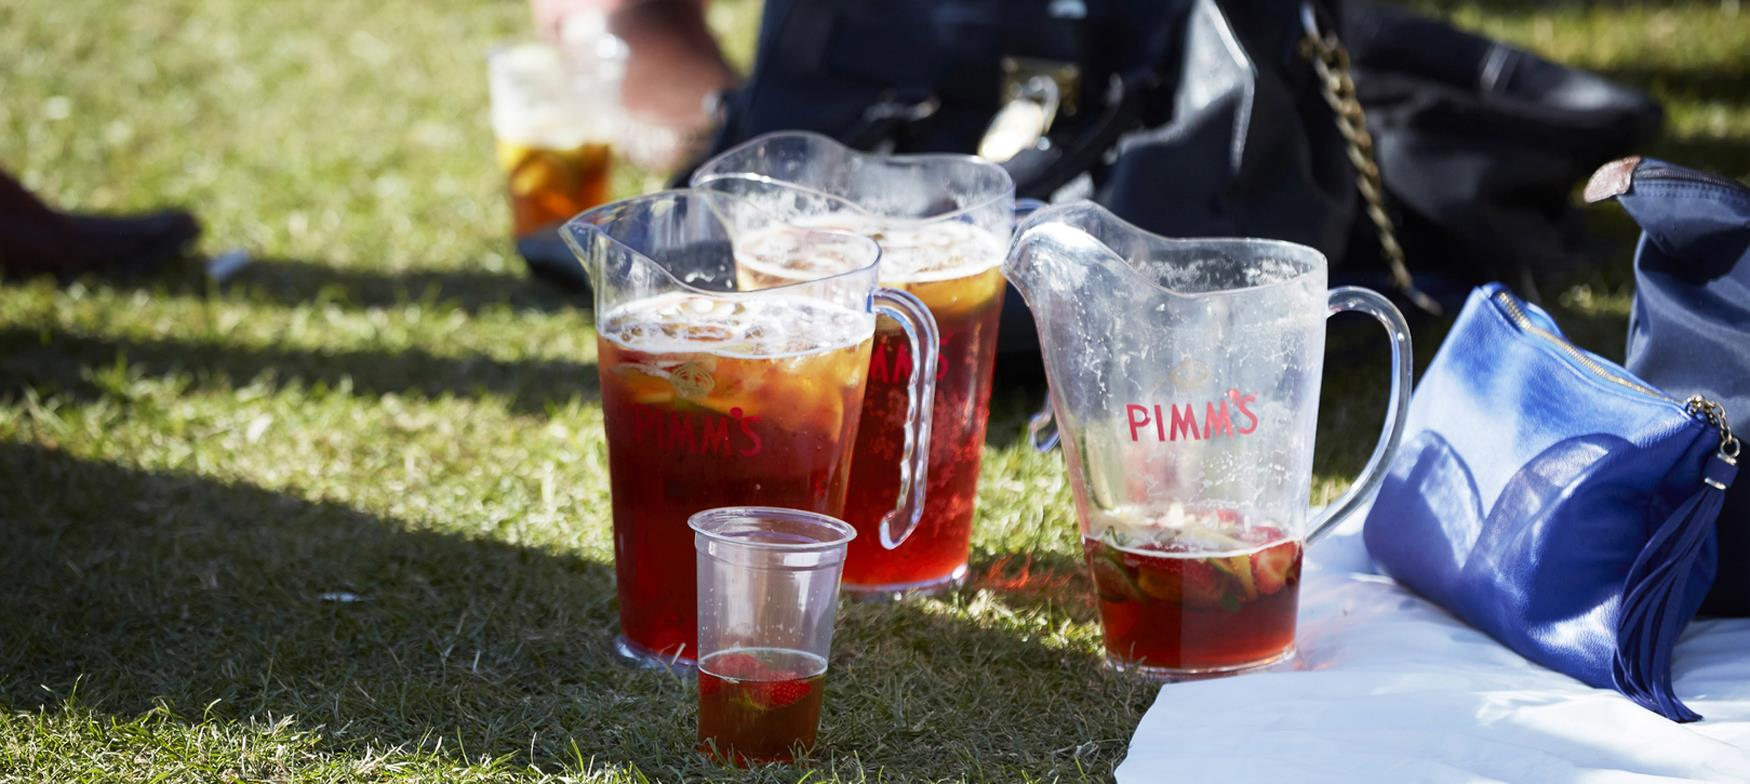 A pitcher of Pimms